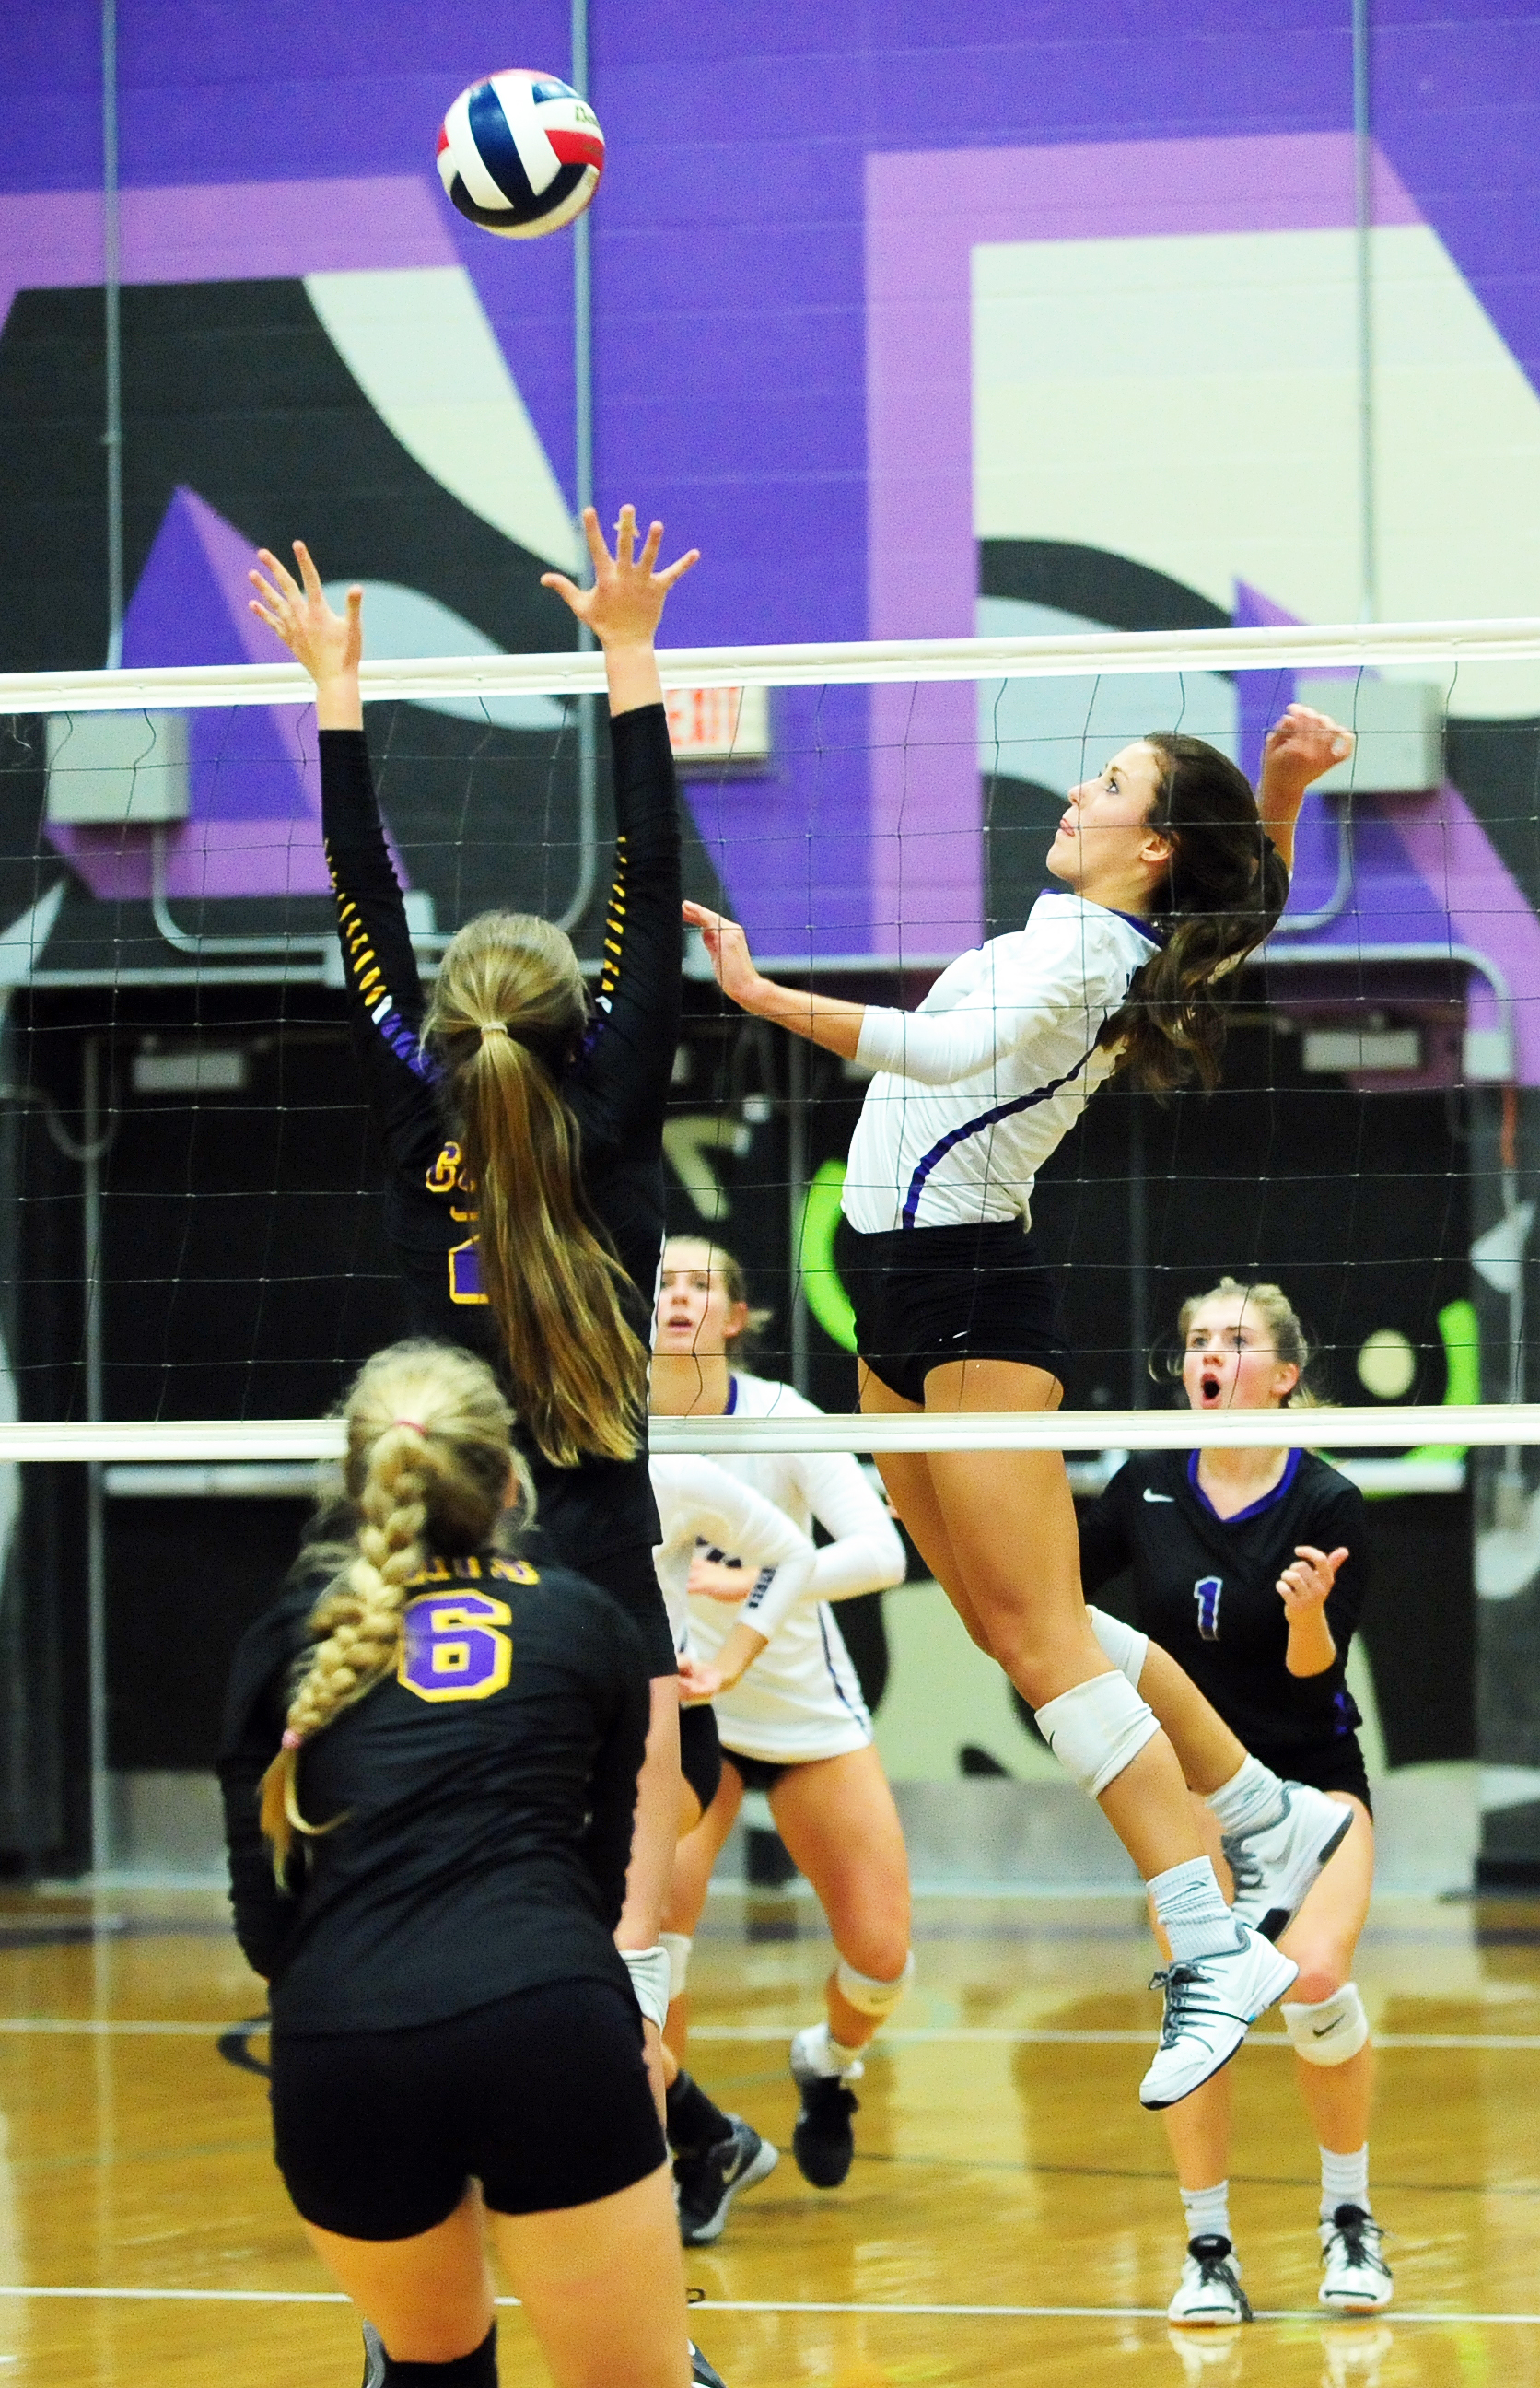 NICK INGRAM/Citizen photo Park Hill South senior Bri Bartosh (7) goes up for a spike in a match with Blue Springs on Thursday, Sept. 29 at Park Hill South High School in Riverside, Mo.